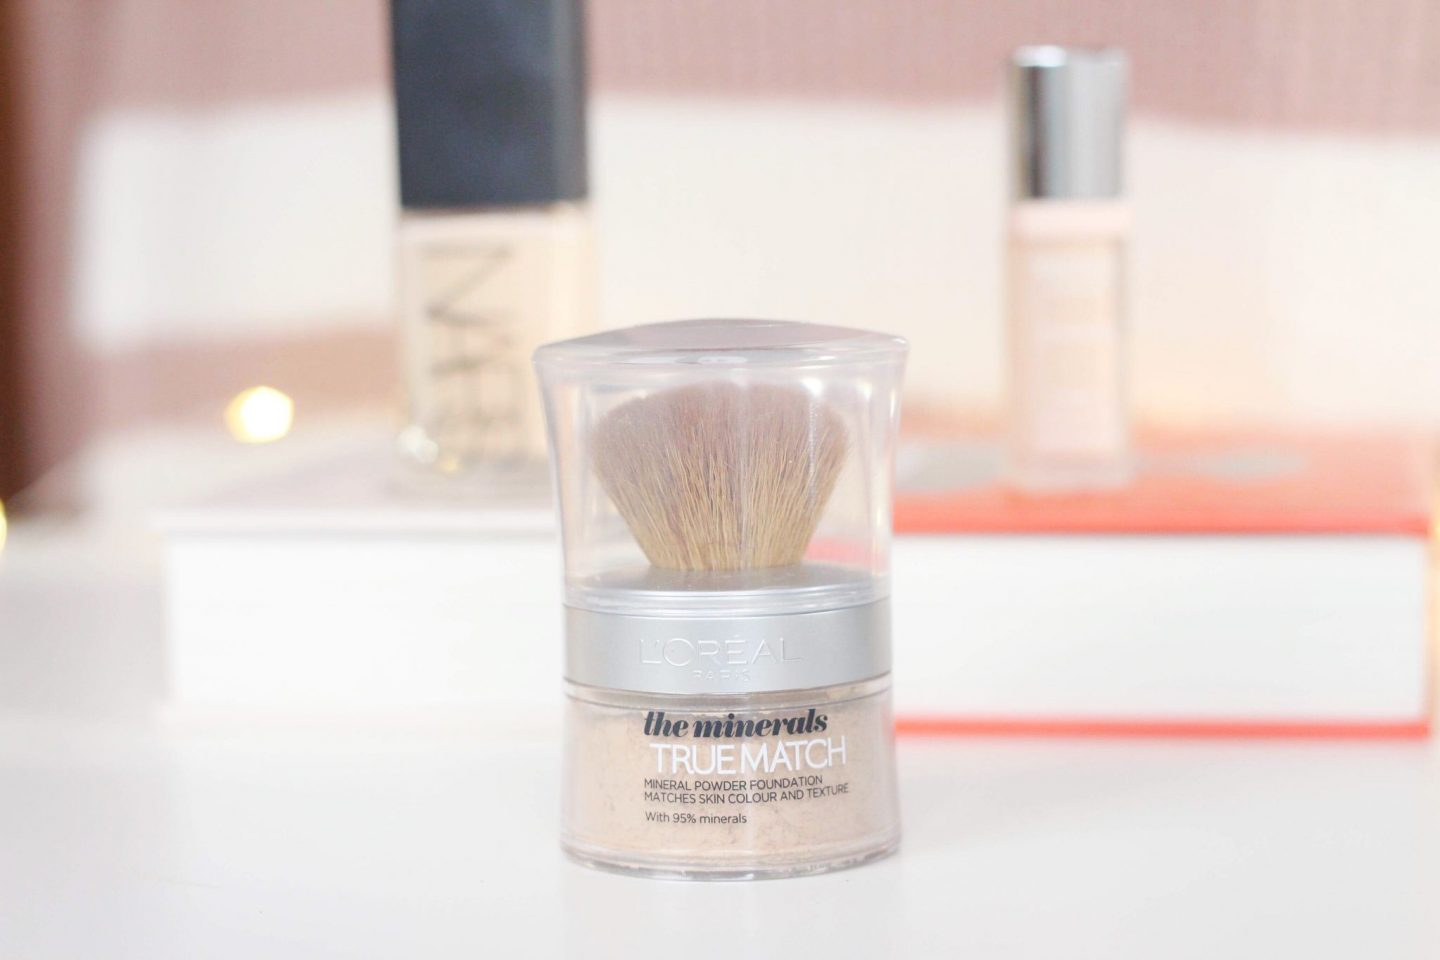 l'oreal true match mineral foundation